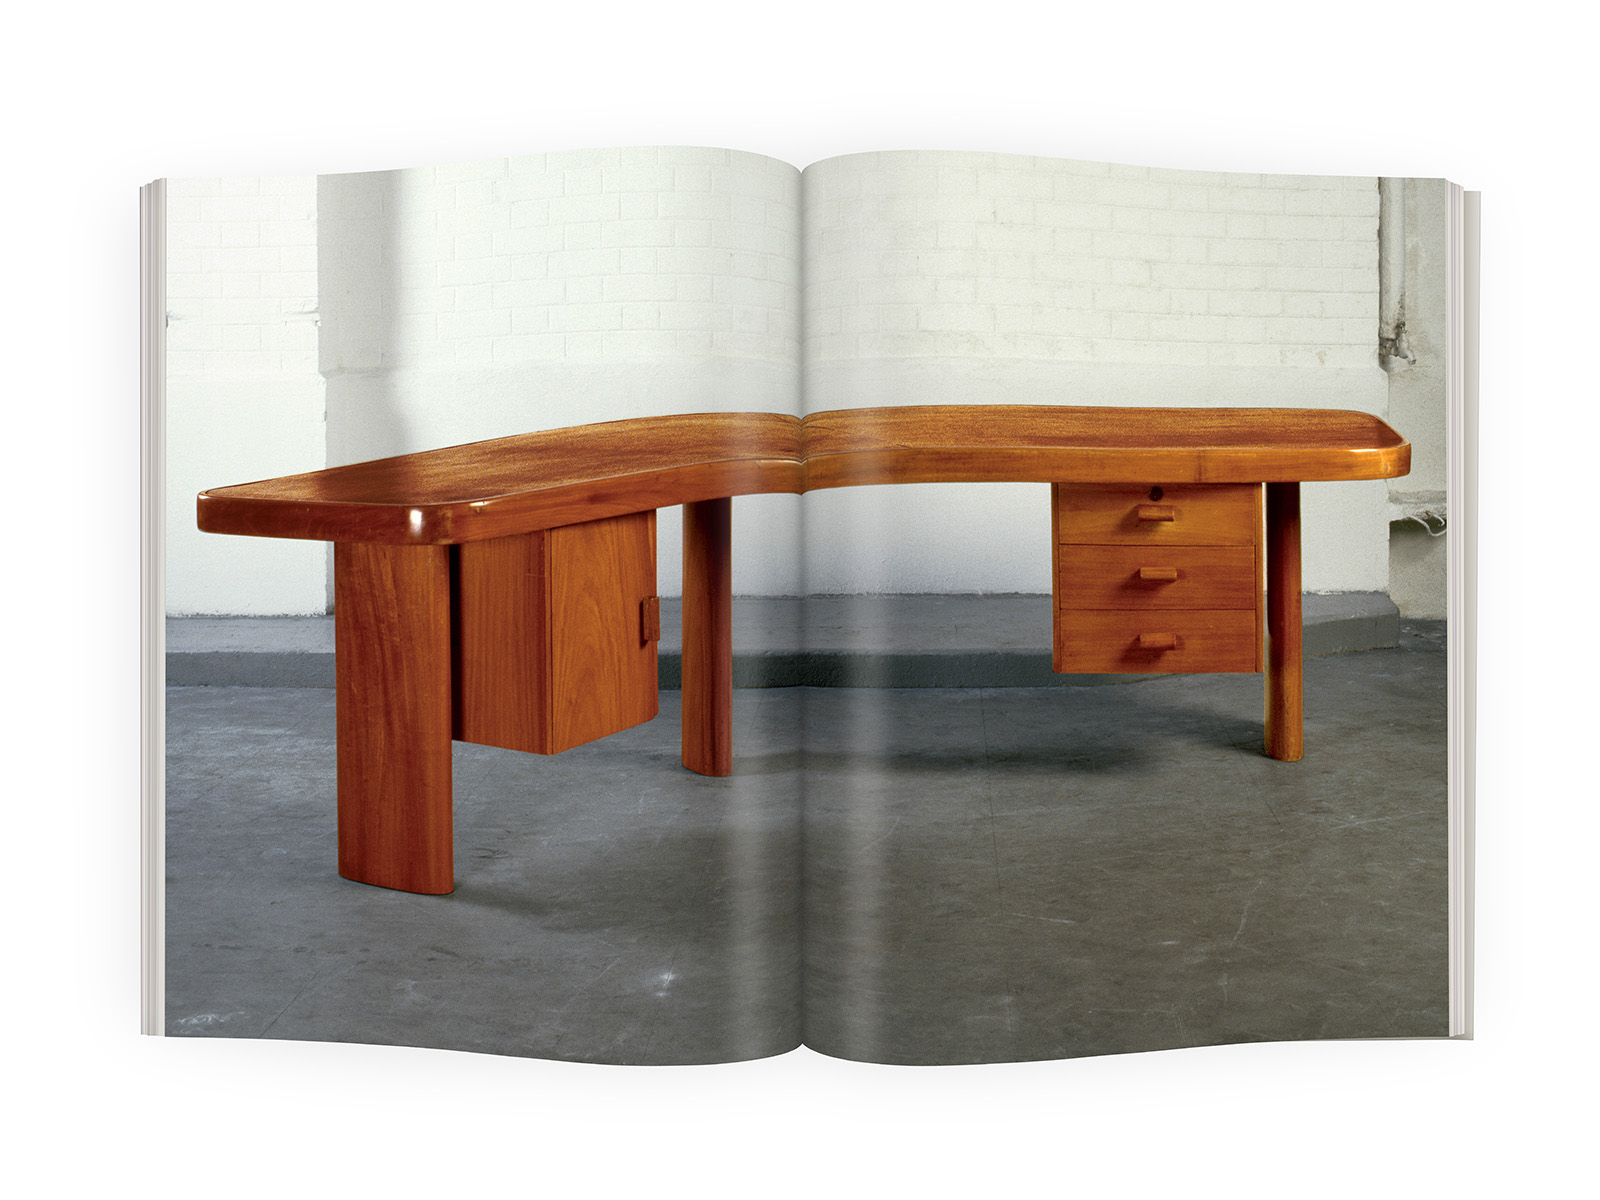 galerieDOWNTOWN - Catalogue Charlotte Perriand Bresil p56-57